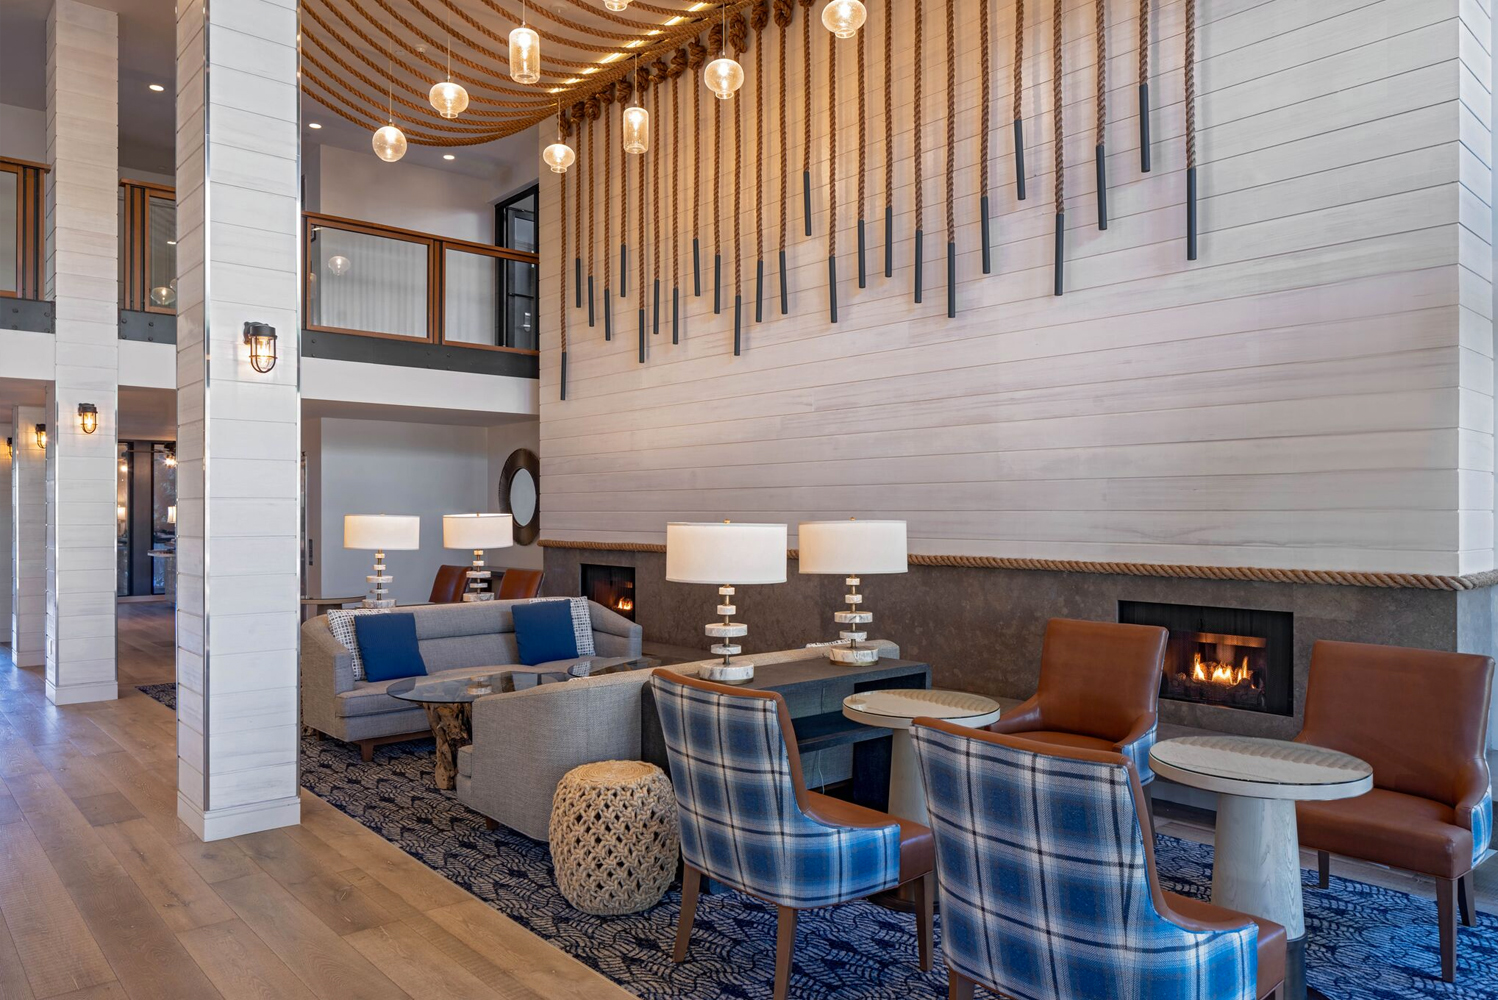 The renovated foyers, halls and elevator lobbies on each floor received new wall coverings and carpeting that reflect the maritime palette found throughout the guestrooms and public spaces.